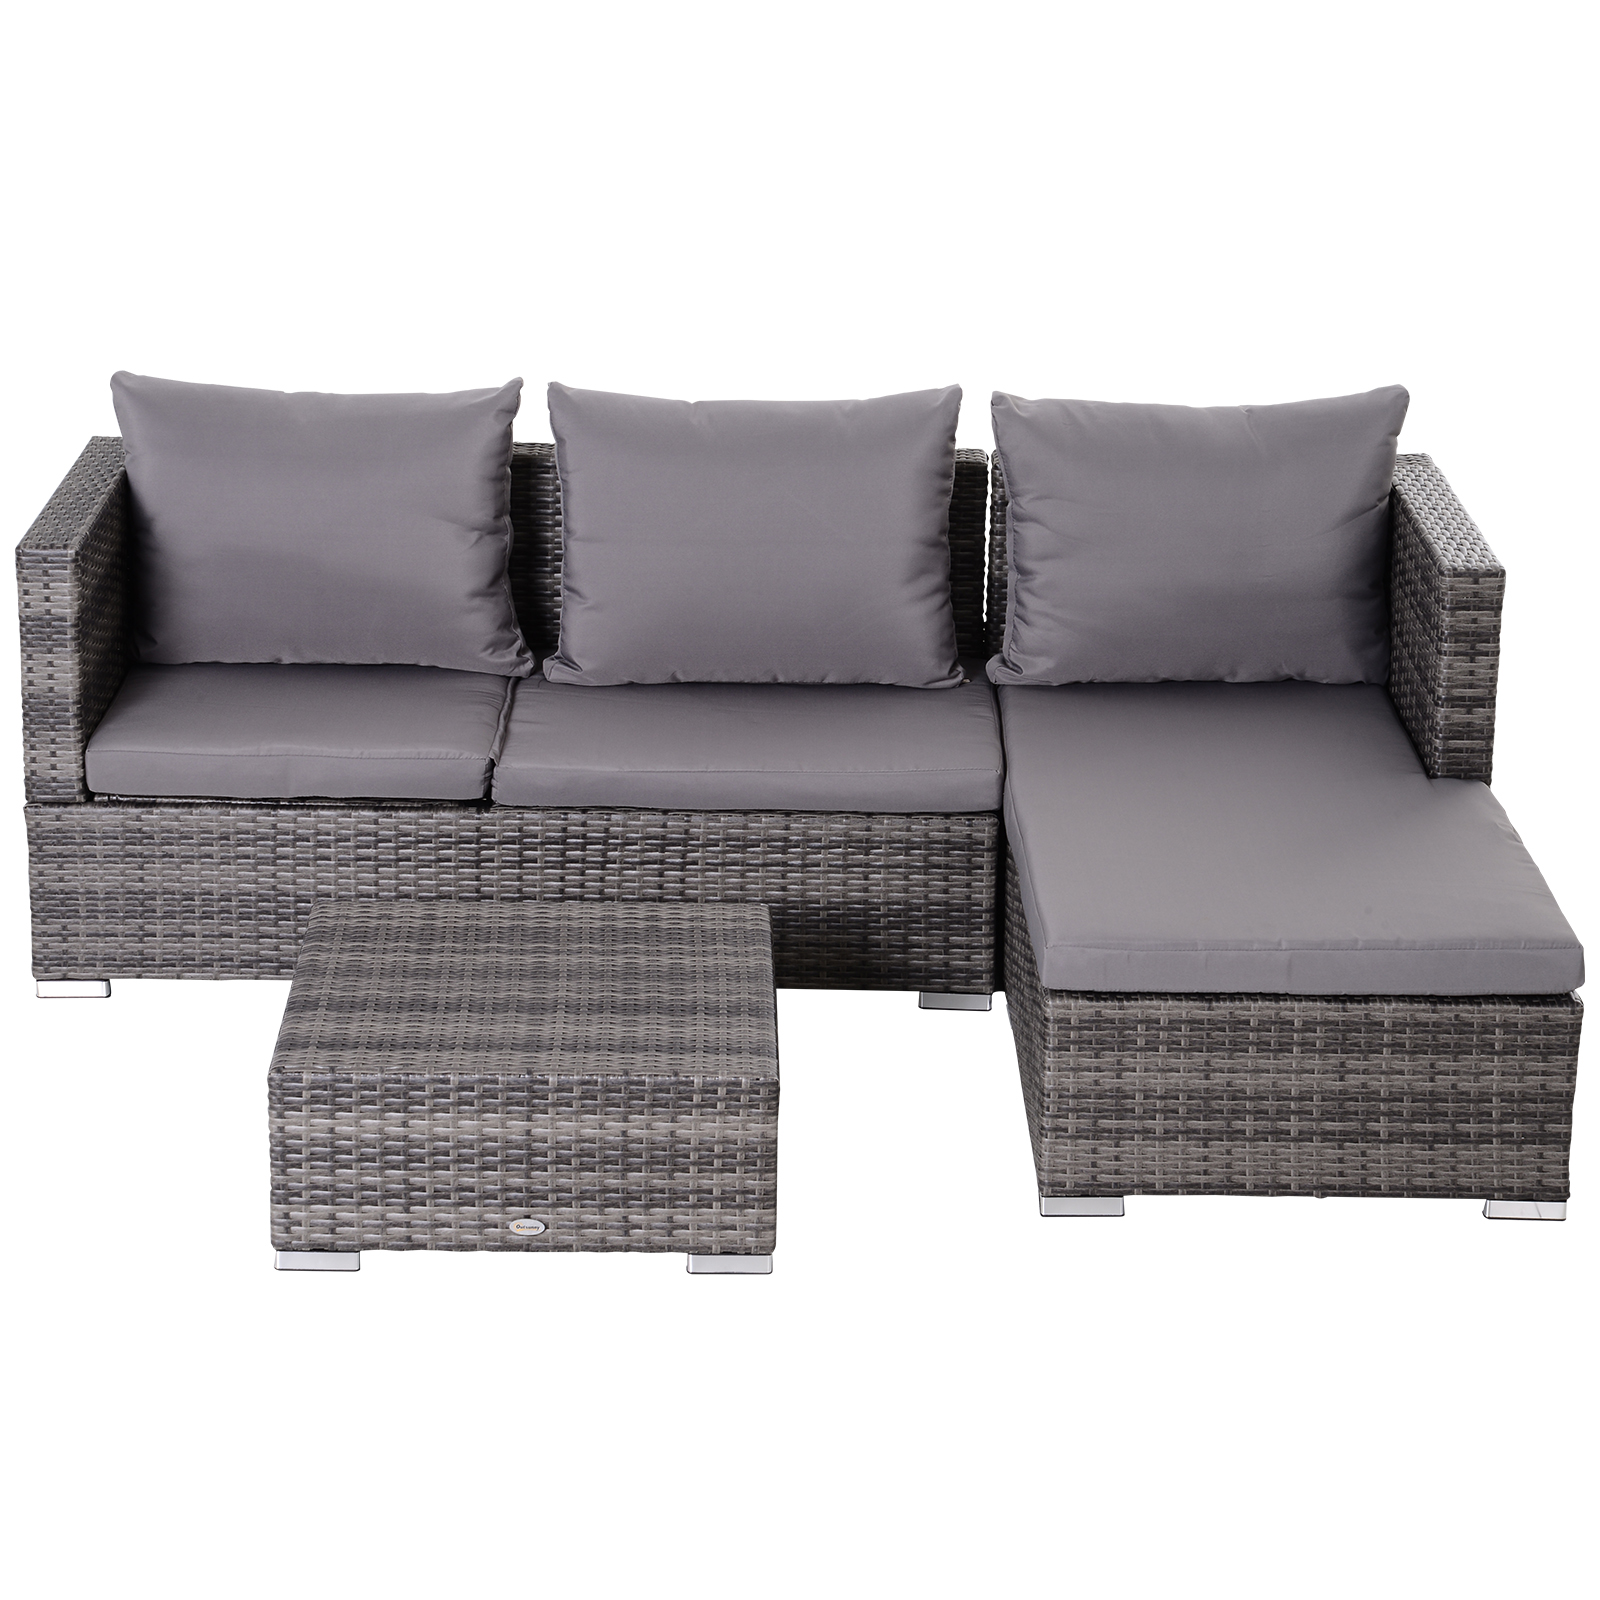 3-Piece-Adjustable-Seat-Rattan-Wicker-Sofa-Set-Sleeping-Couch-Bed-Lounge-Grey miniature 8